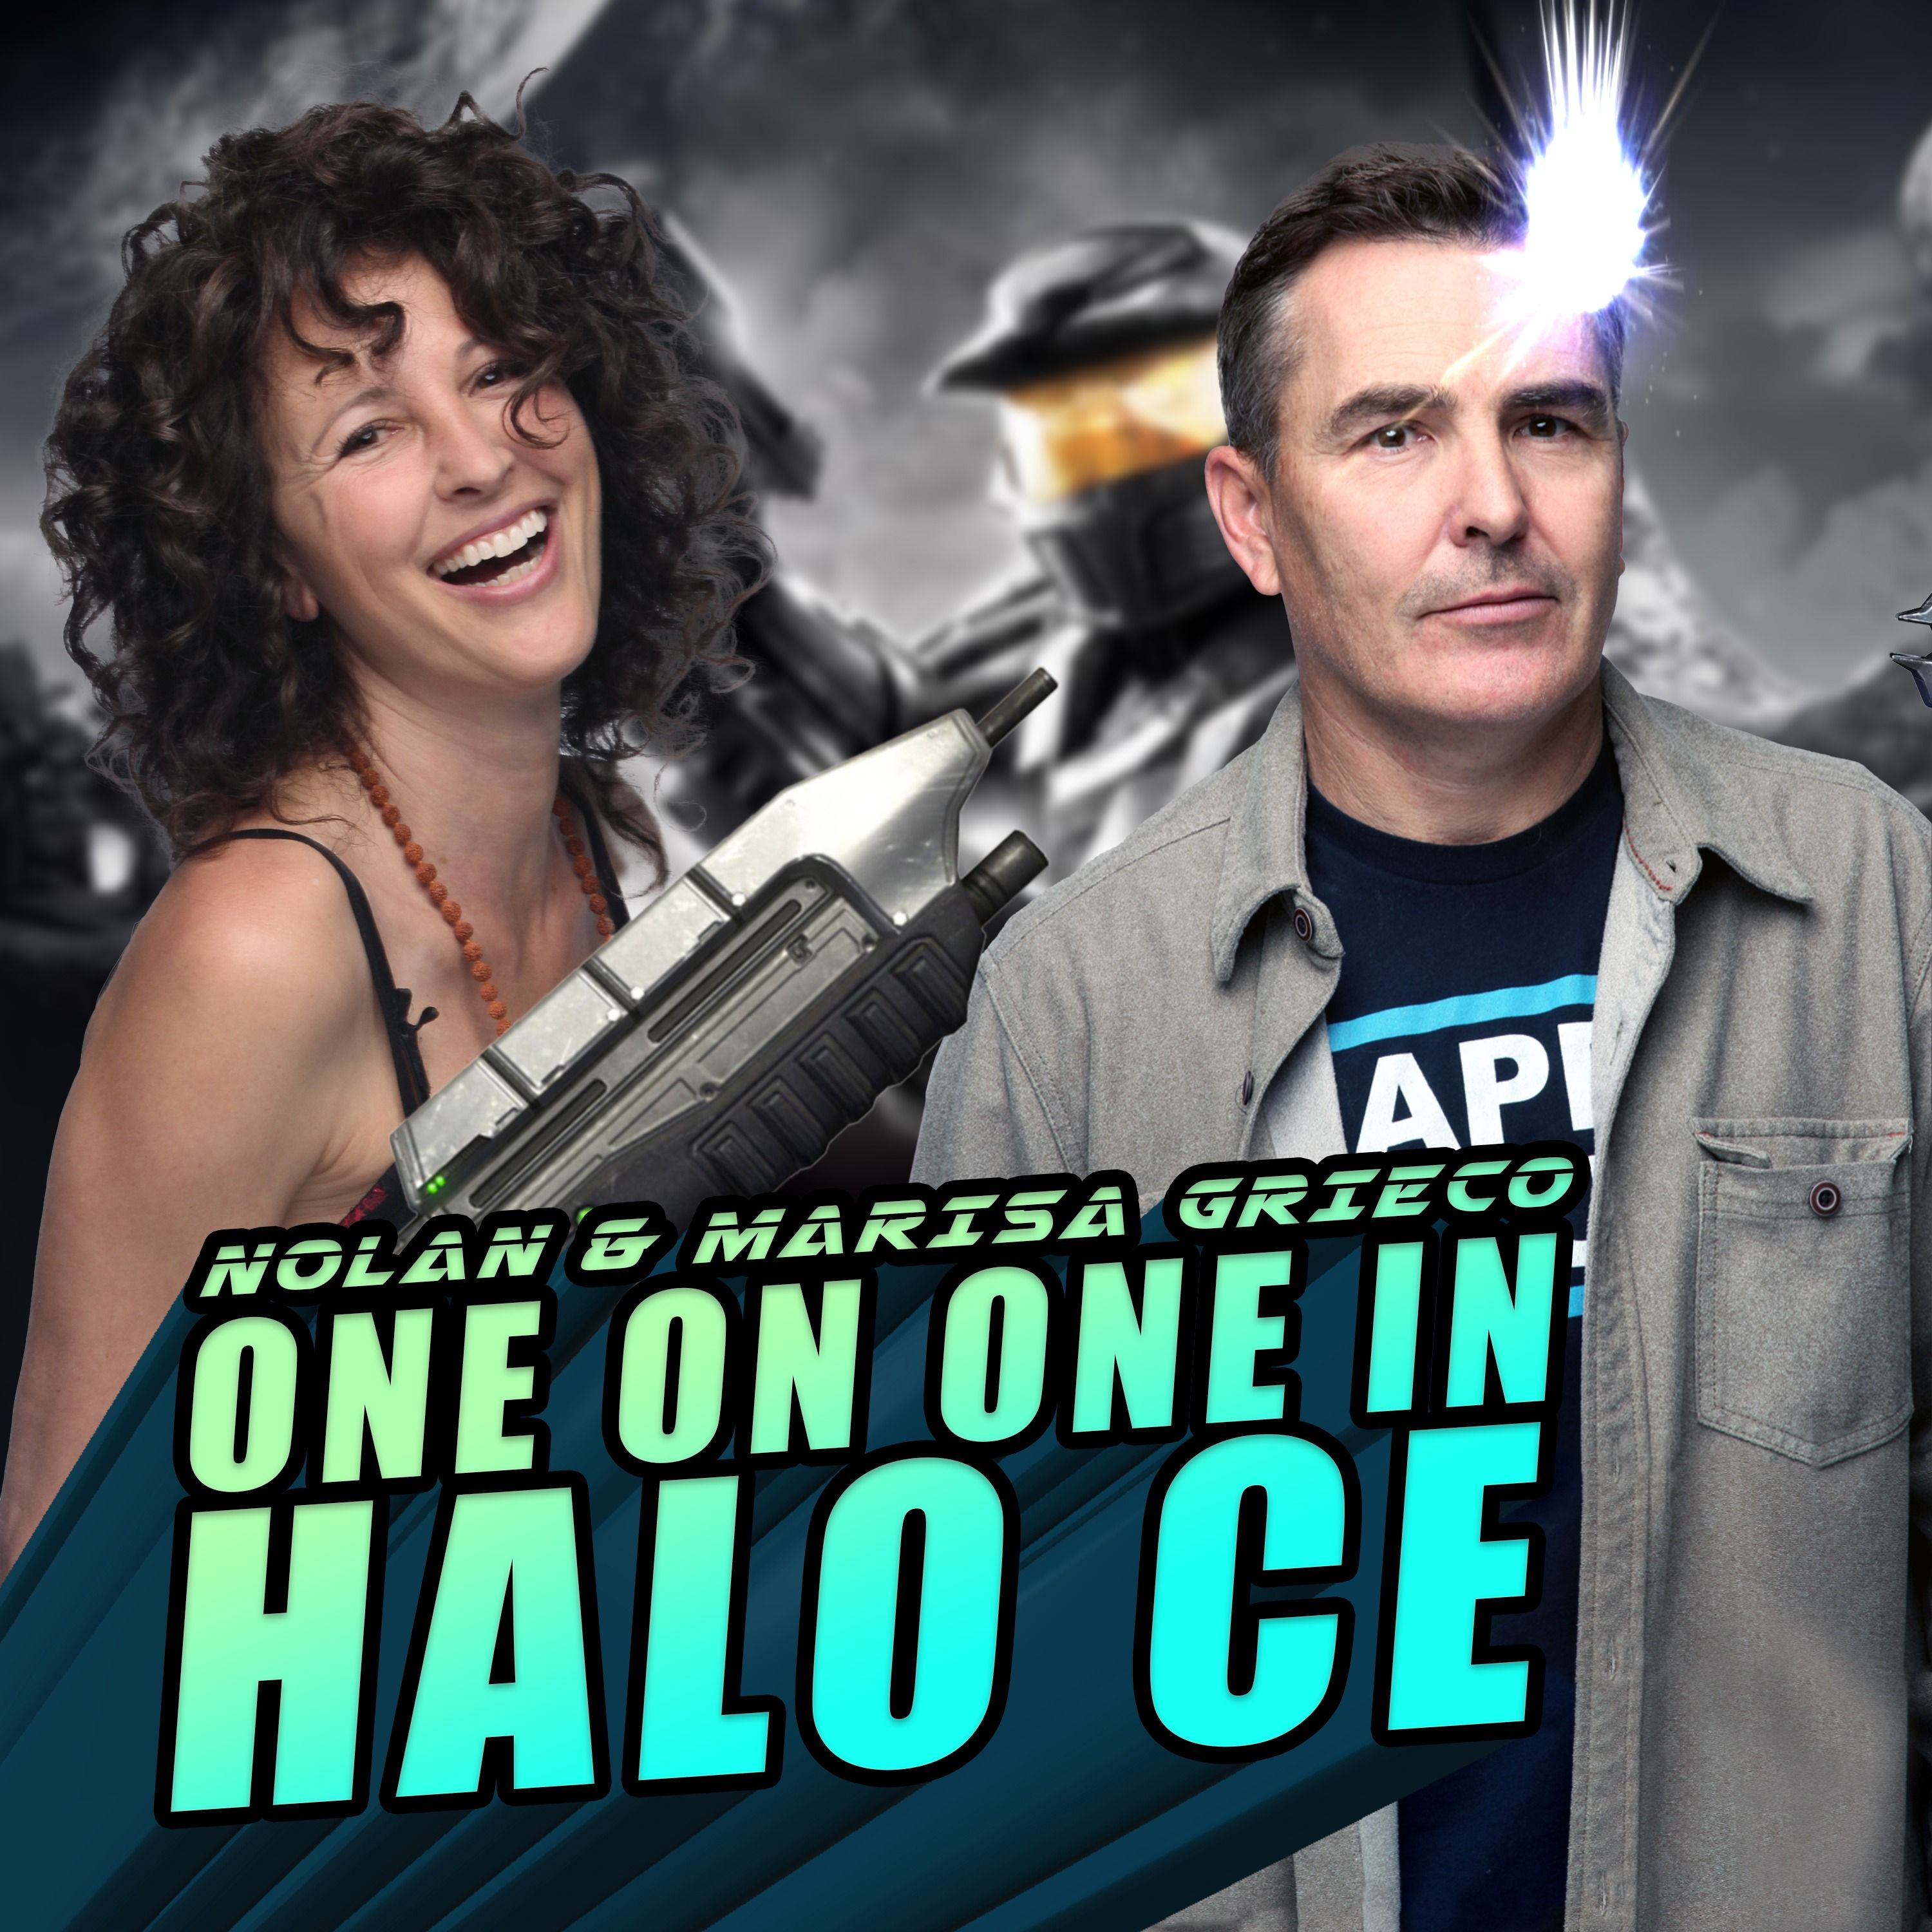 Nolan North & Marisa Grieco Haarsma One on One in Halo: Combat Evolved! | RETRO REPLAY